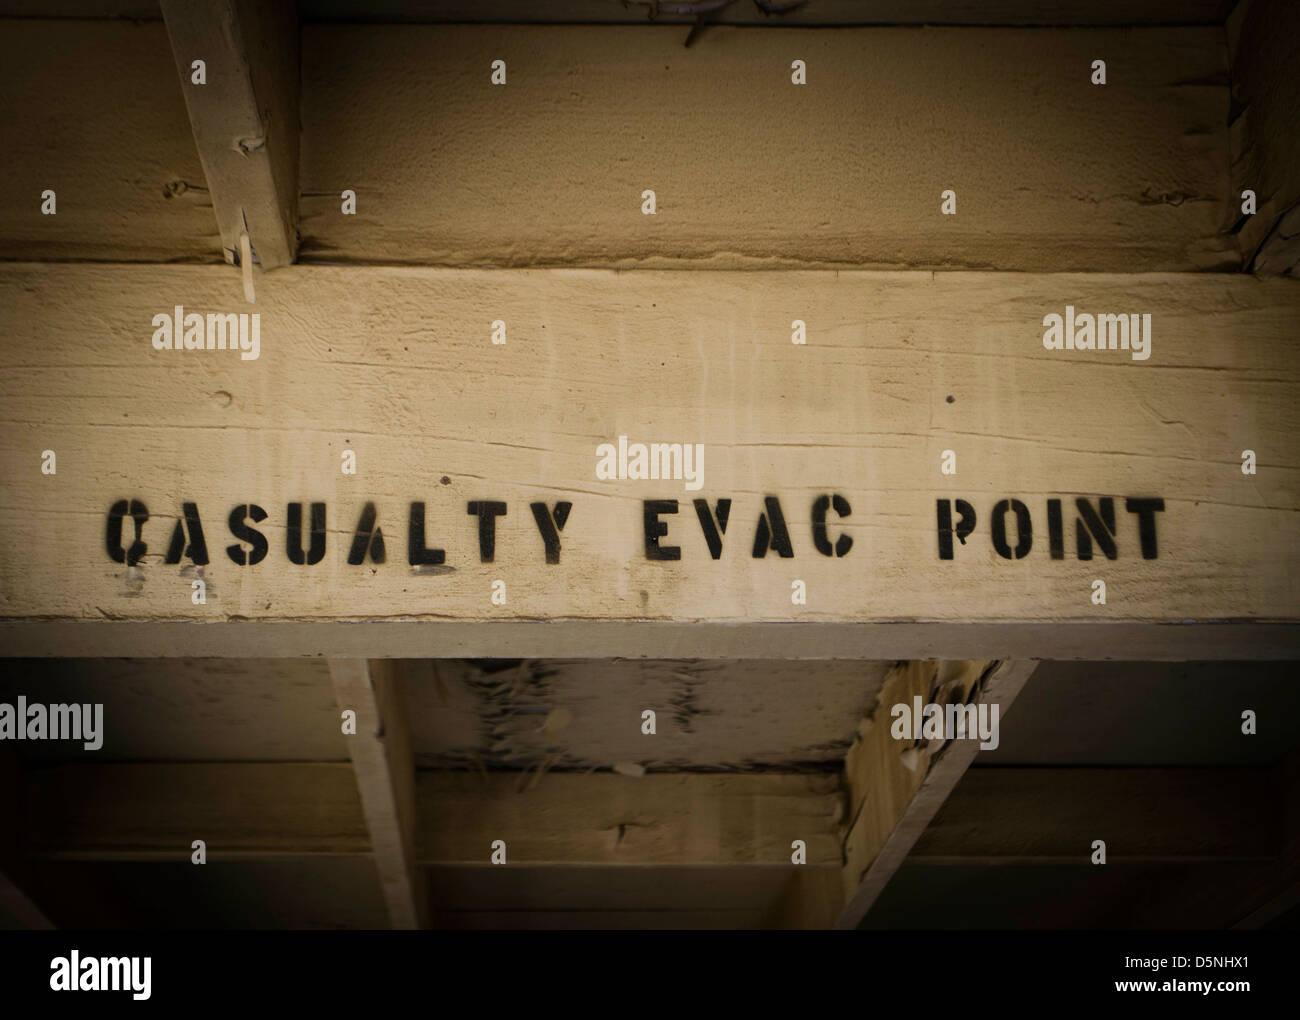 casualty evacuation point sign - Stock Image